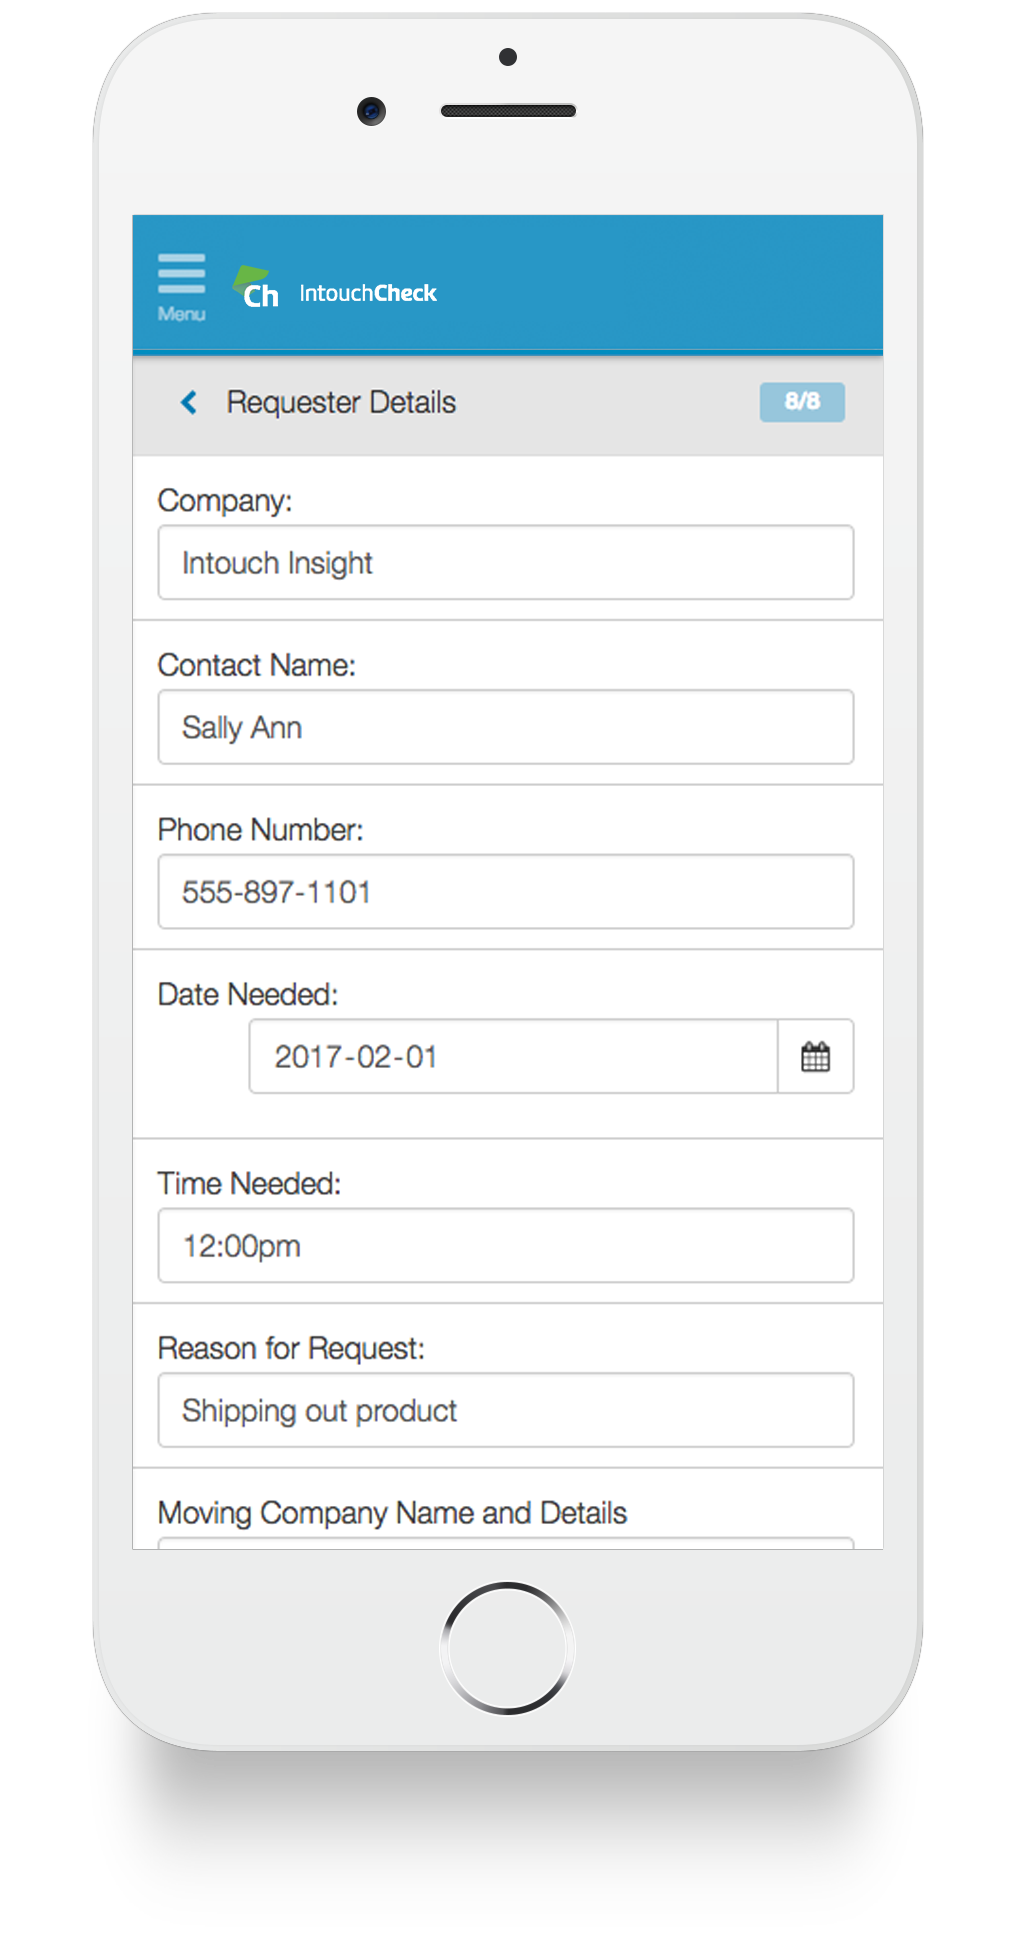 freight-elevator-request-form-1.png